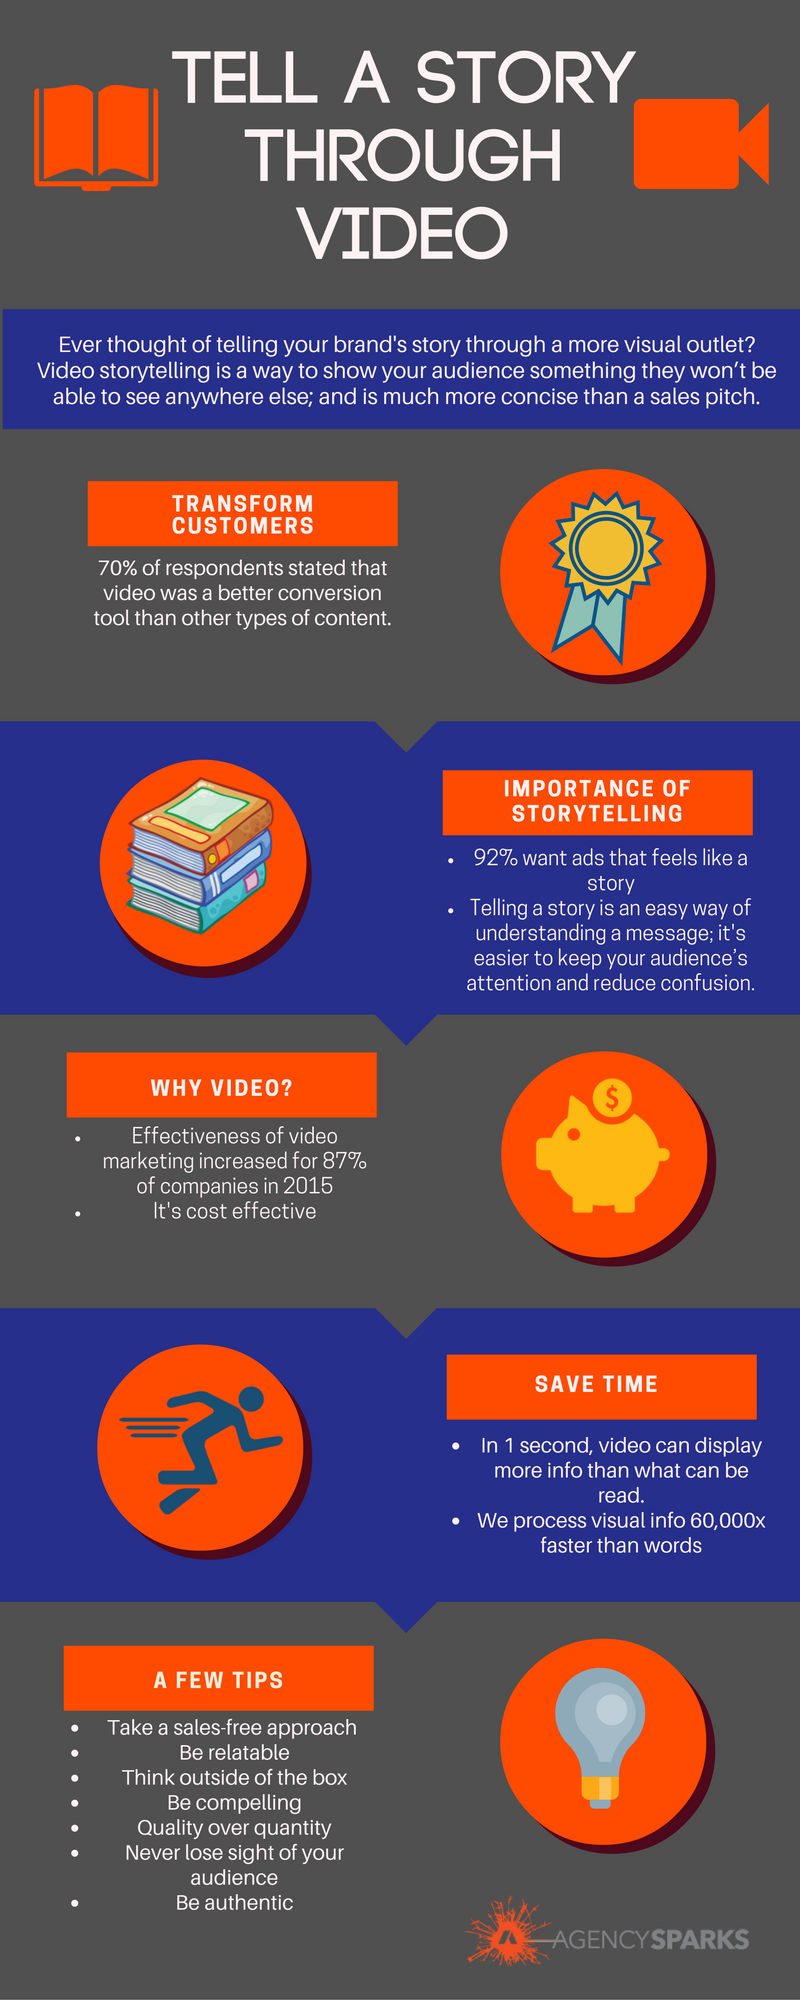 Video Marketing Infographic - AgencySparks      Video marketing has become one of the most effective and inexpensive ways to promote a brand, but 92% of consumers want advertising that feels like a story. Telling a story through video is much more concise than a sales pitch. 70% say that video is a better conversion tool than any other type of content. Video storytelling is also cost-effective, saves time, and reduces confusion among customers. Be authentic, compelling, and keep your audience in mind with a sales-free approach. Check out more tips for effective video visuals in the image above!